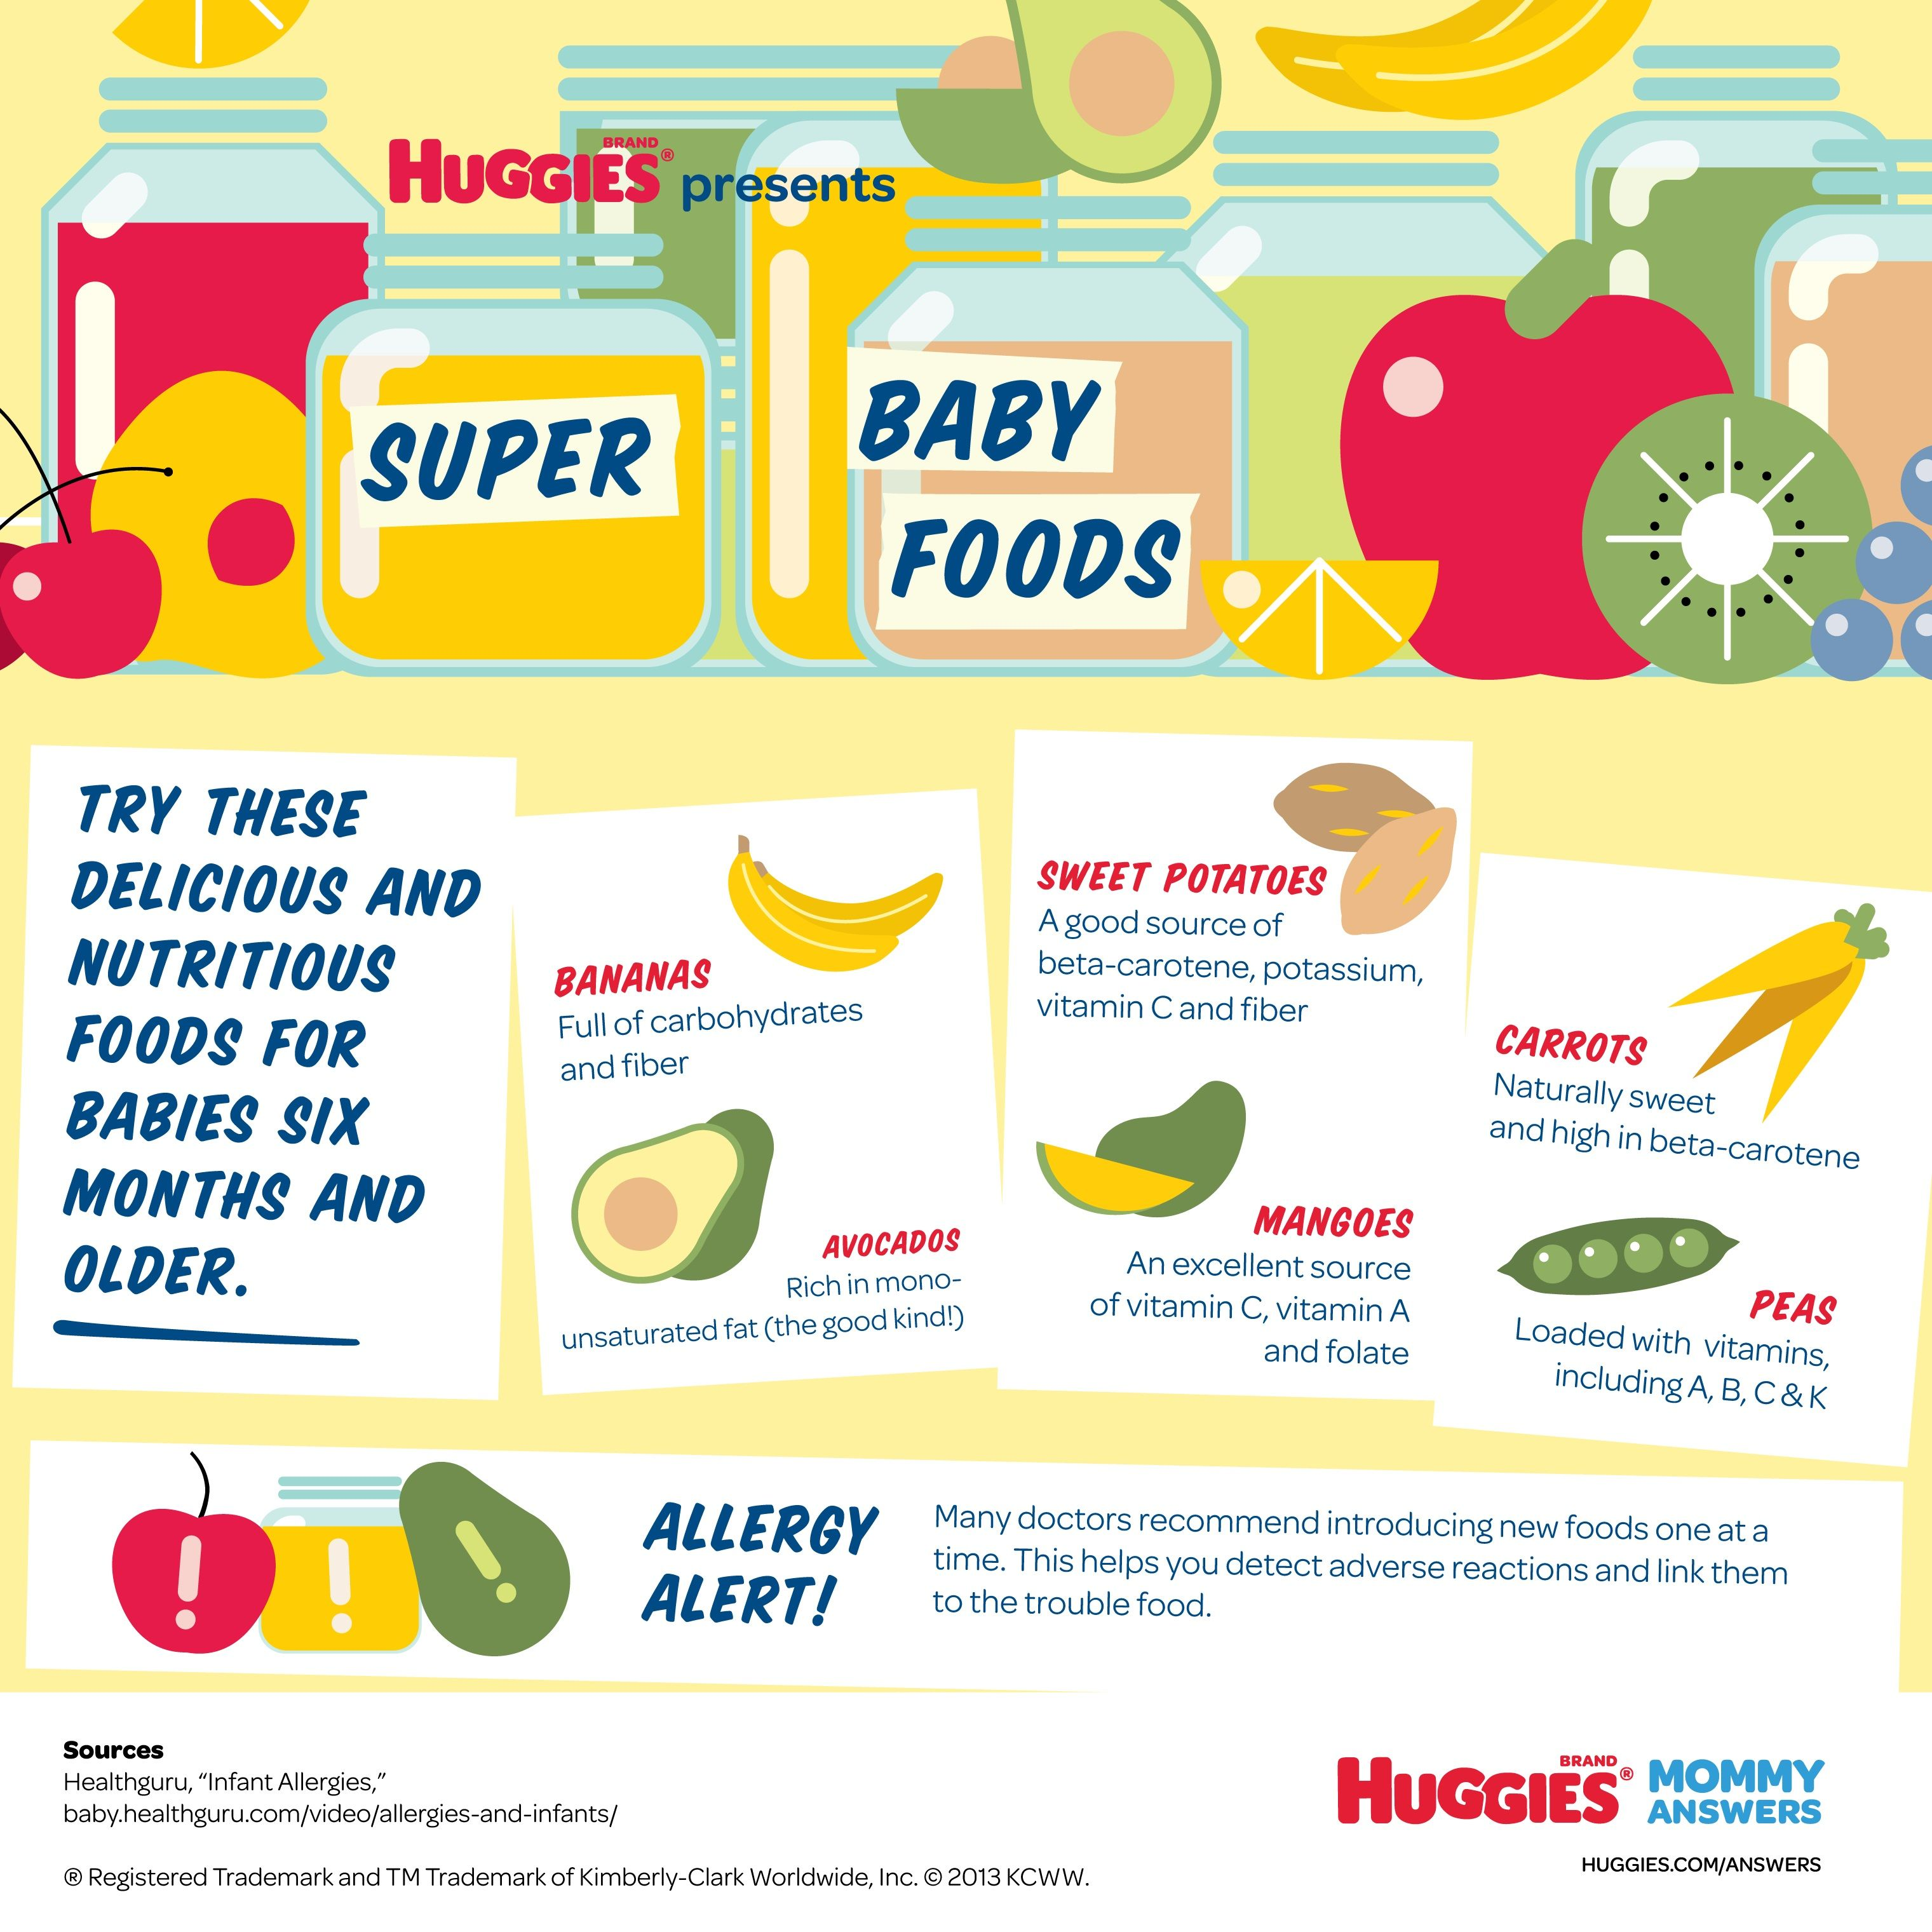 Super Baby Foods by HUGGIES® Baby food recipes, Baby